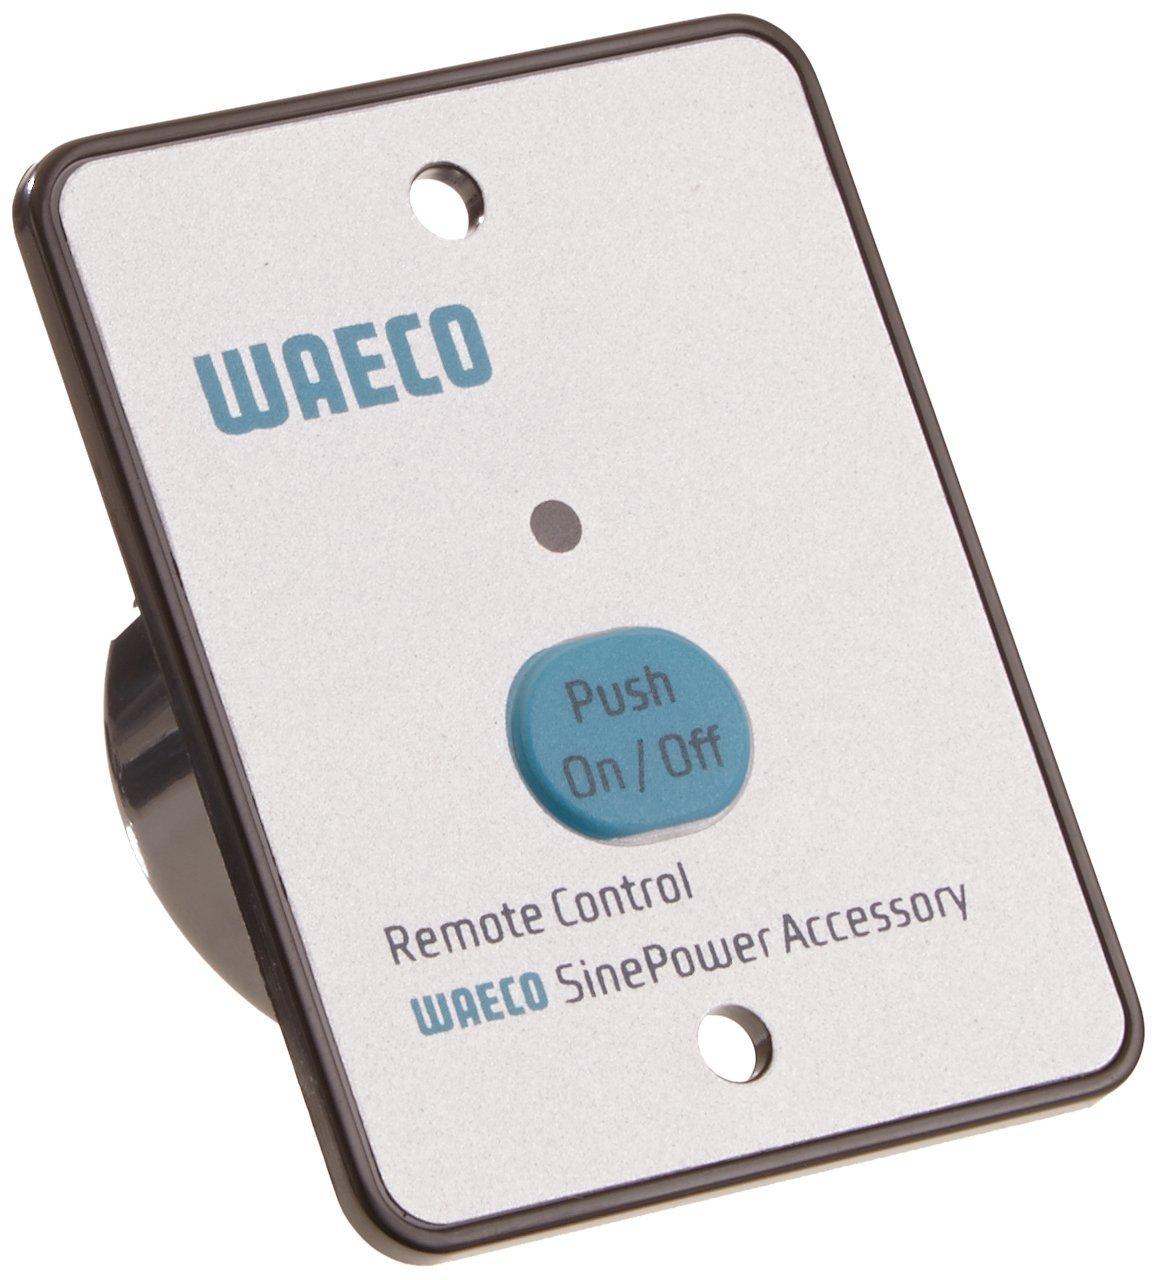 Waeco SinePower MCR Remote Control Panel for Inverters